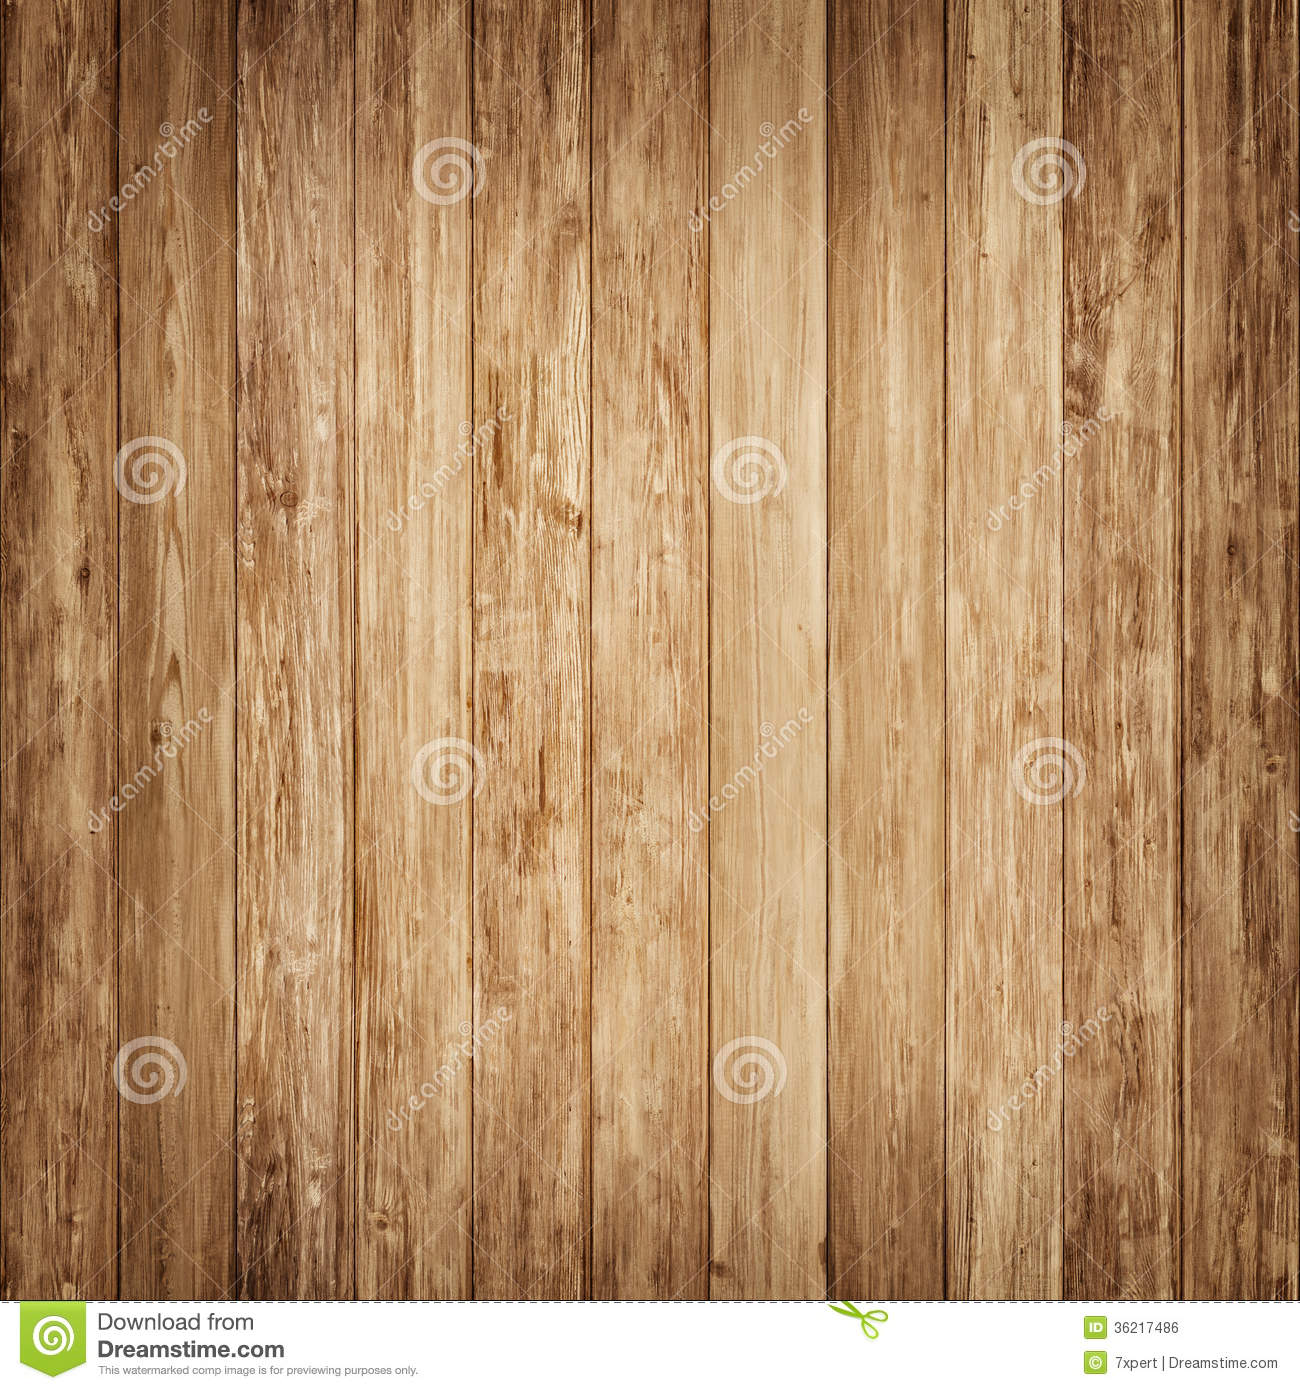 texture en bois de parquet photo stock image du brun 36217486. Black Bedroom Furniture Sets. Home Design Ideas